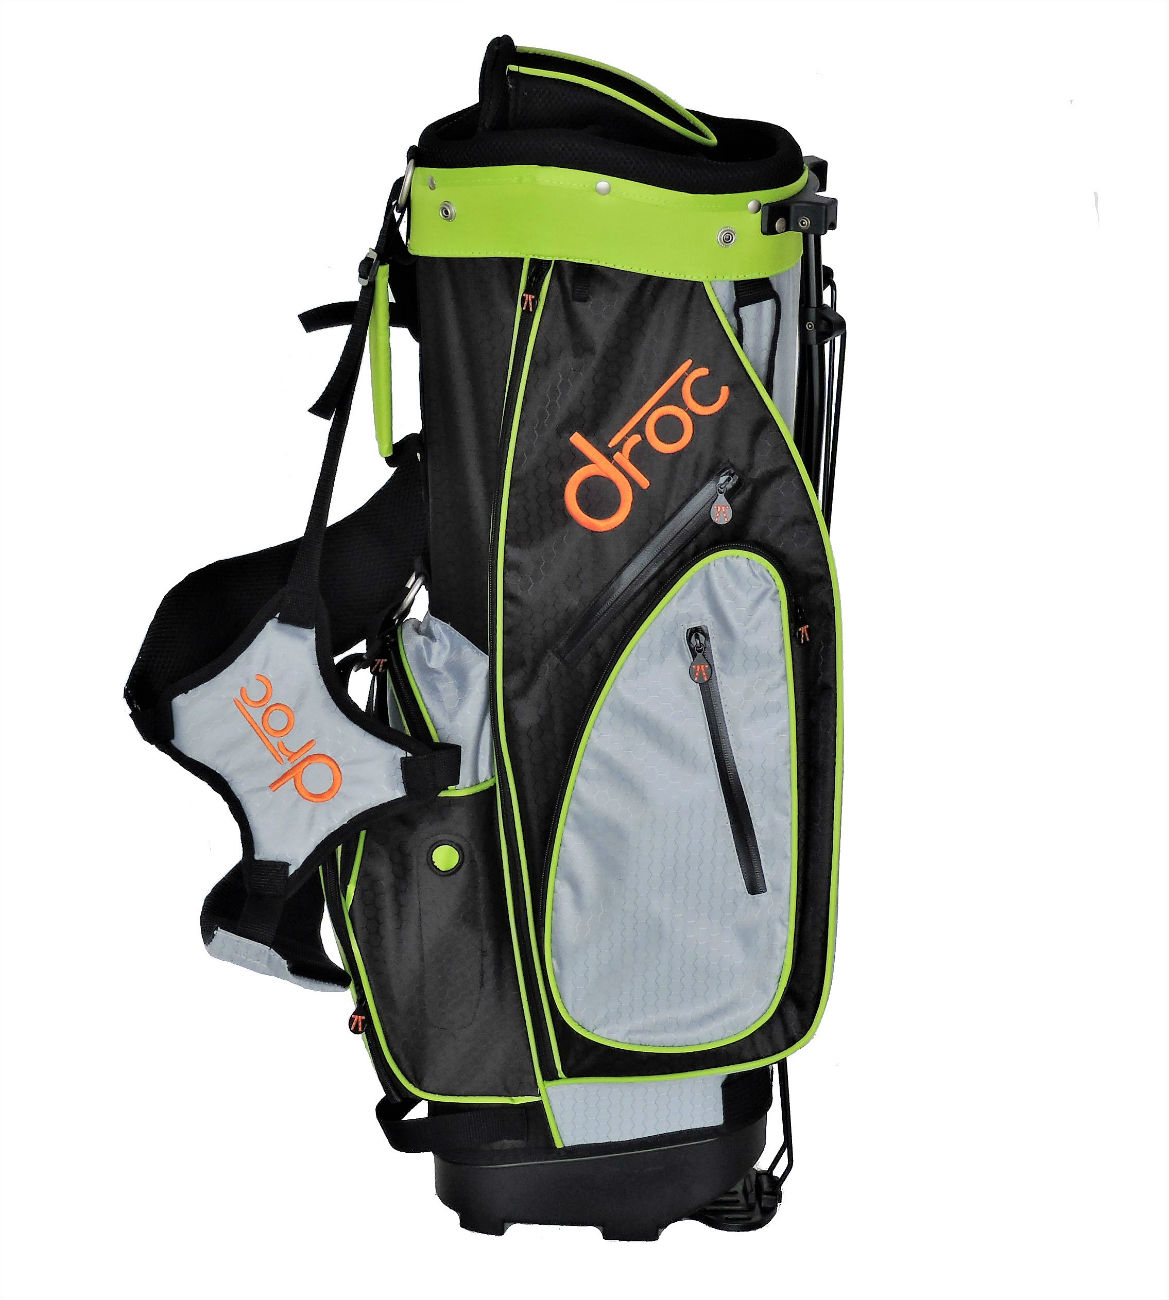 Droc - Dimond Golf Bag Age 11 - 14 (Black_Lime, 32